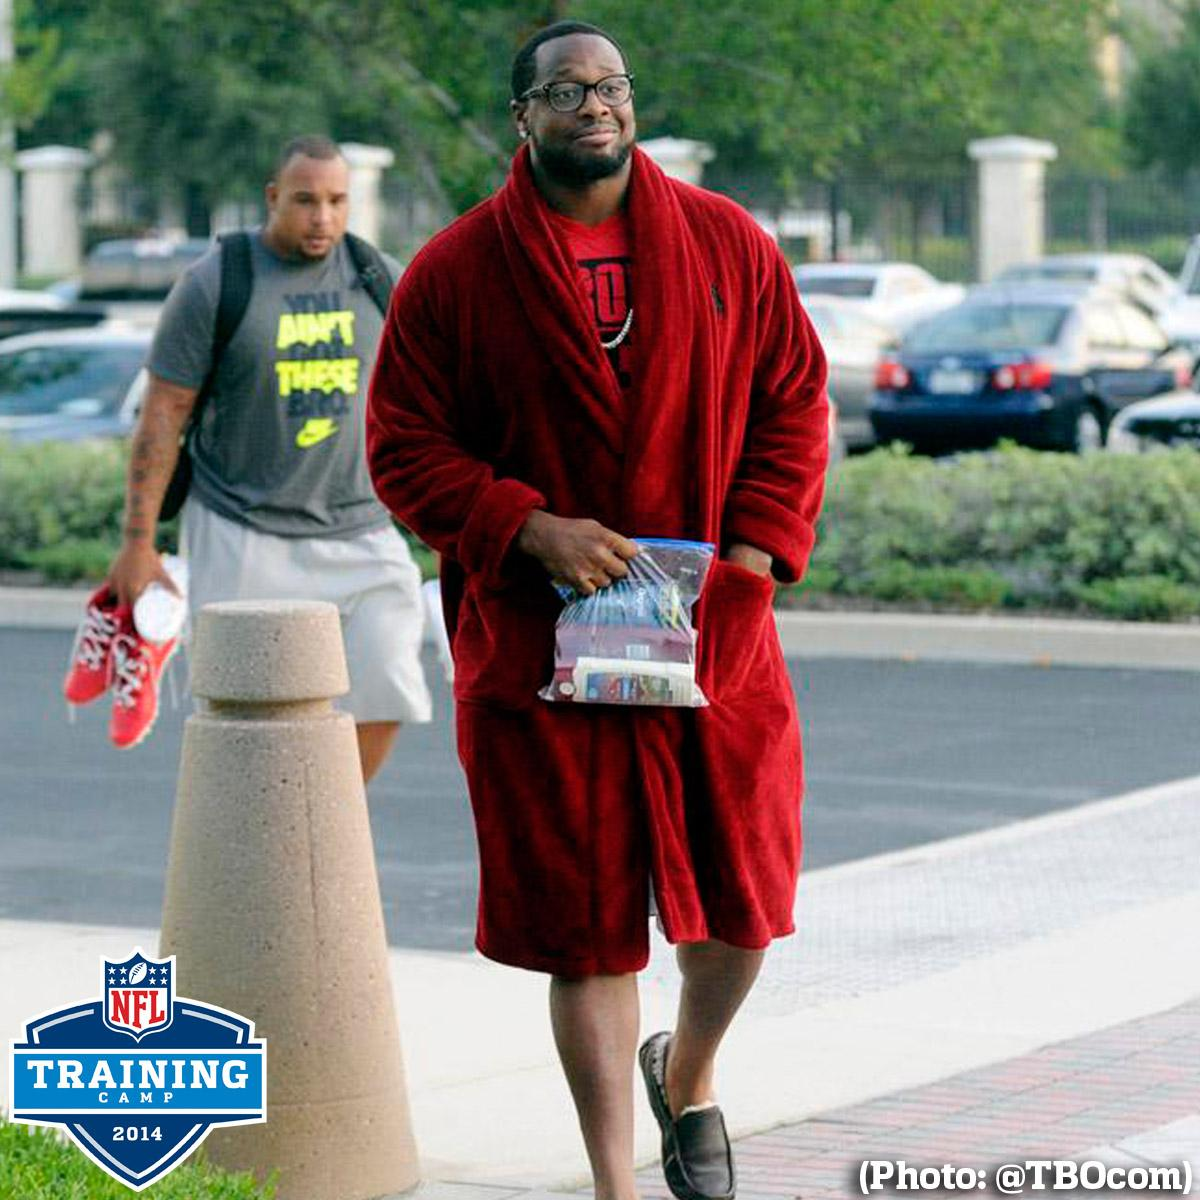 RT @nfl: Time to go to work. #NFLTrainingCamp (Photo: @TBOcom) http://t.co/ssbfgKaisq